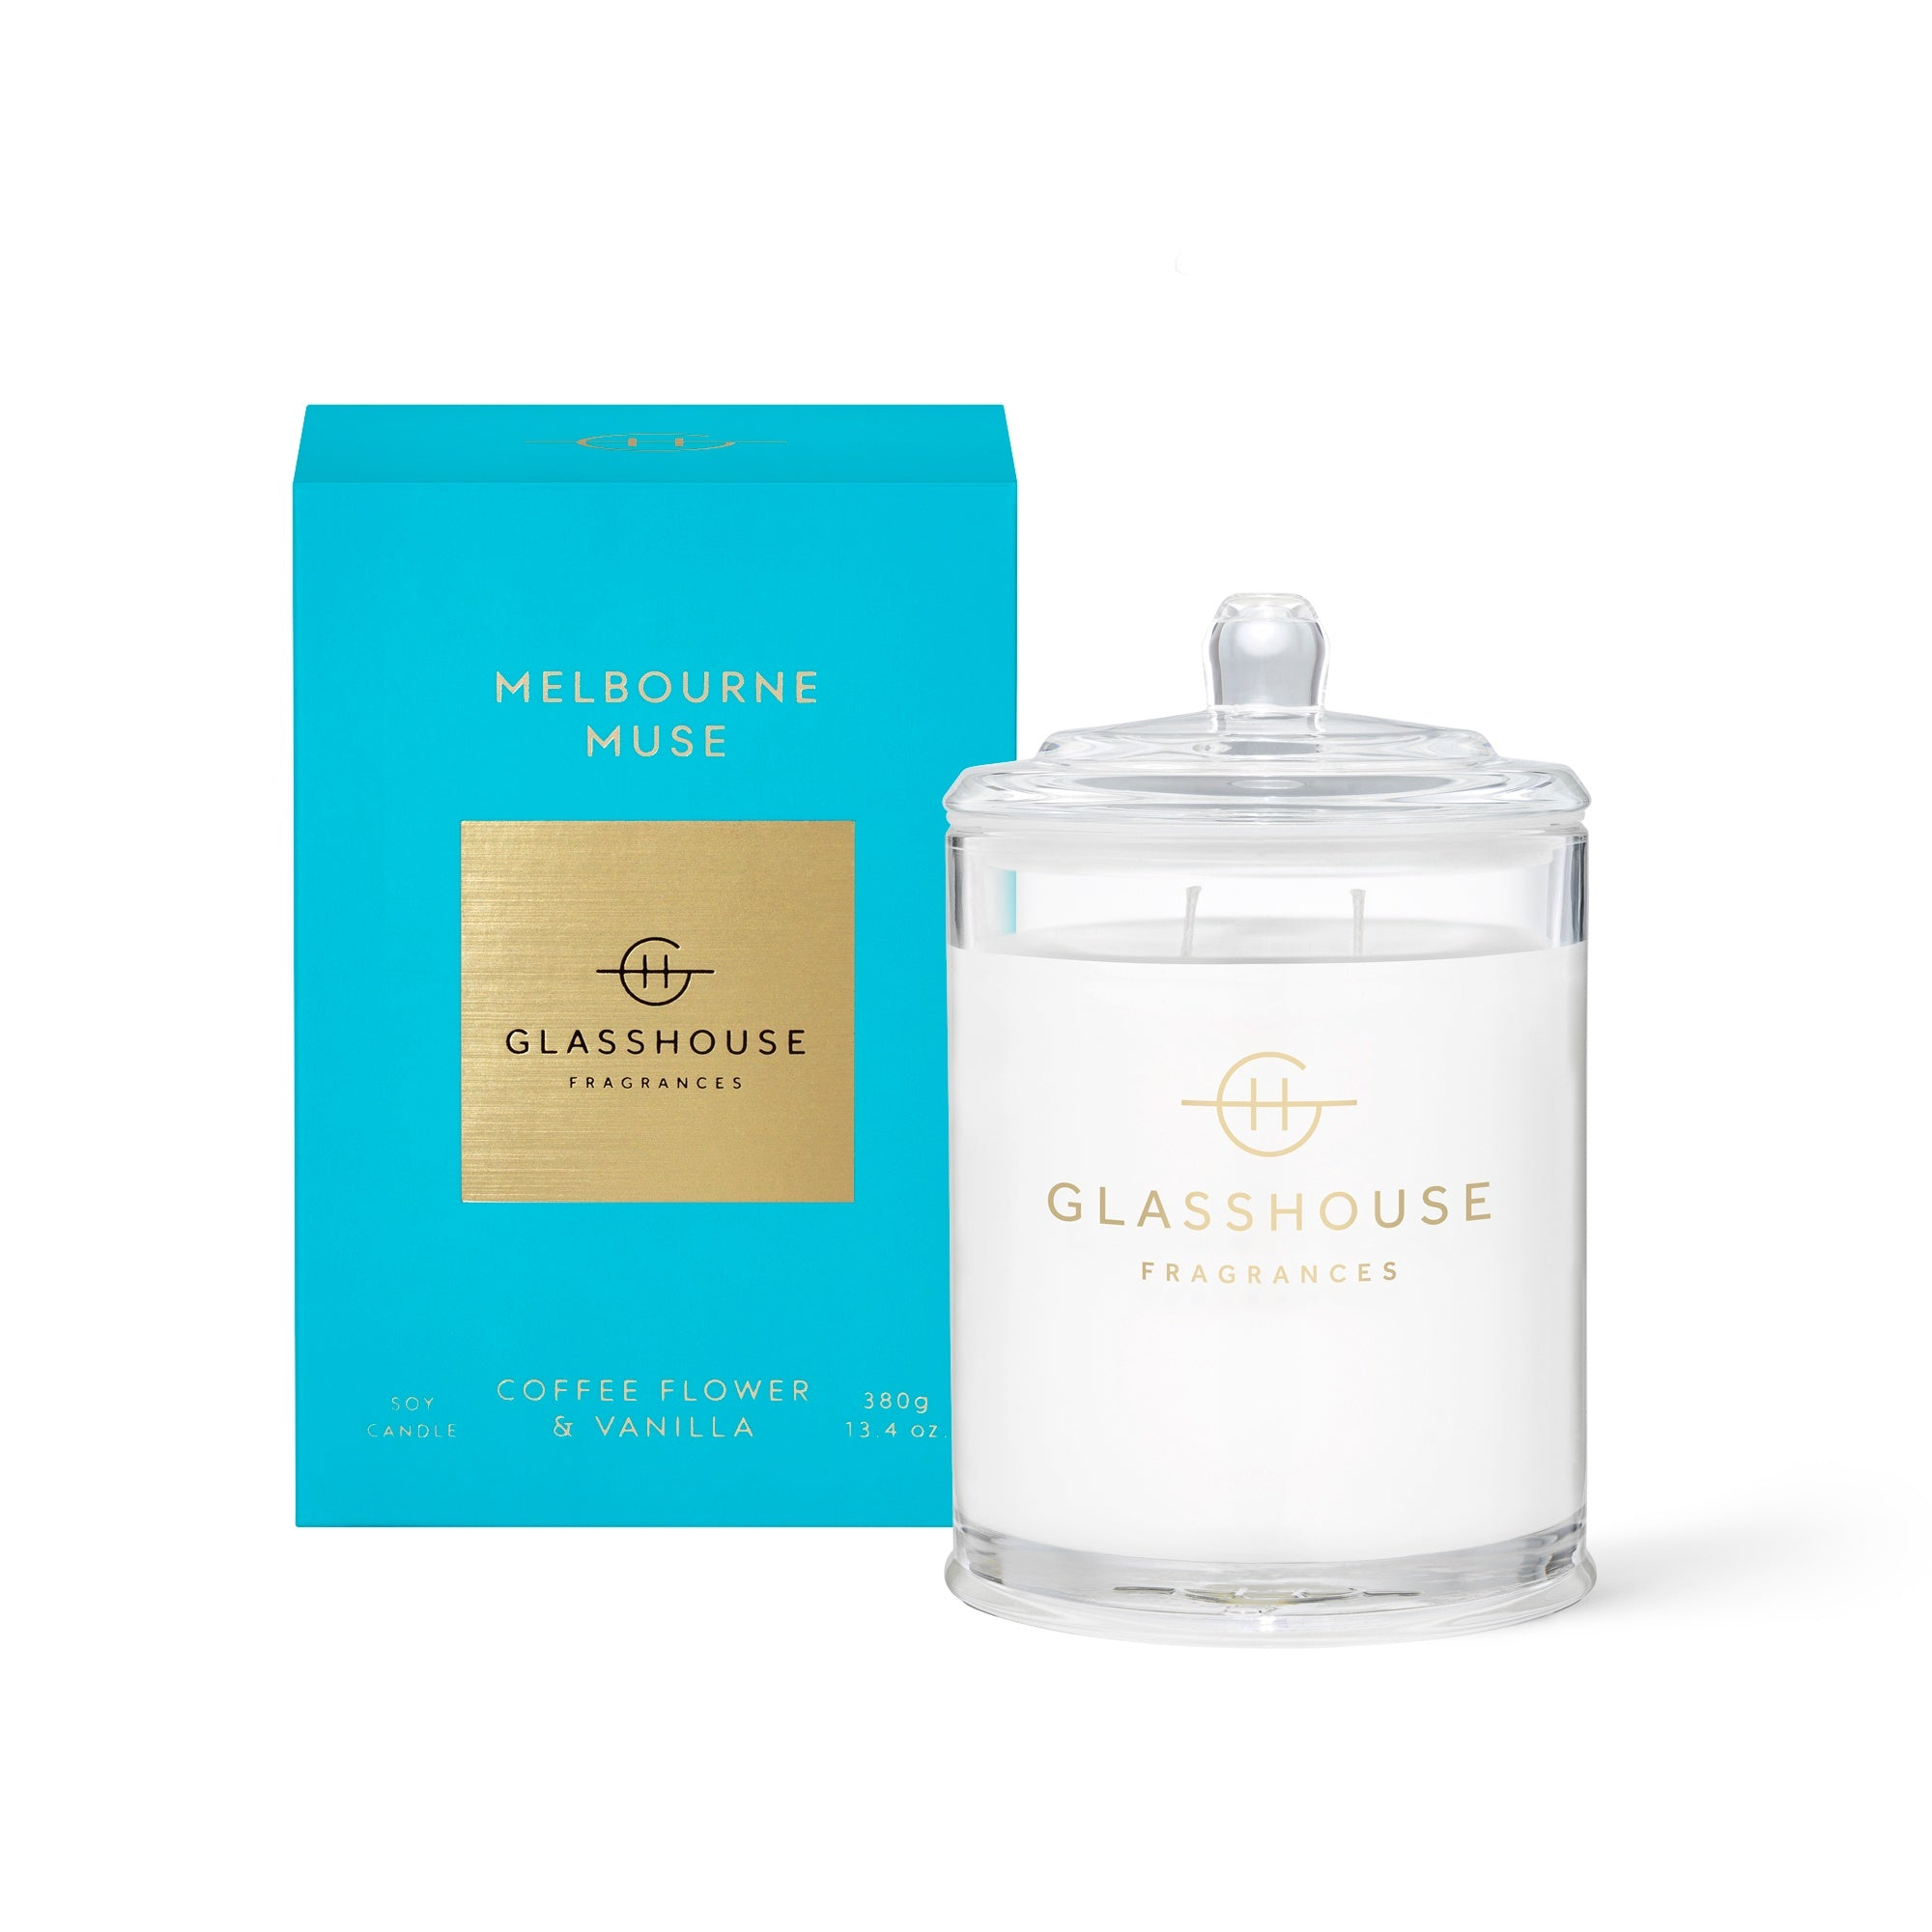 Melbourne Muse Soy Candle - Coffee Flower and Vanilla